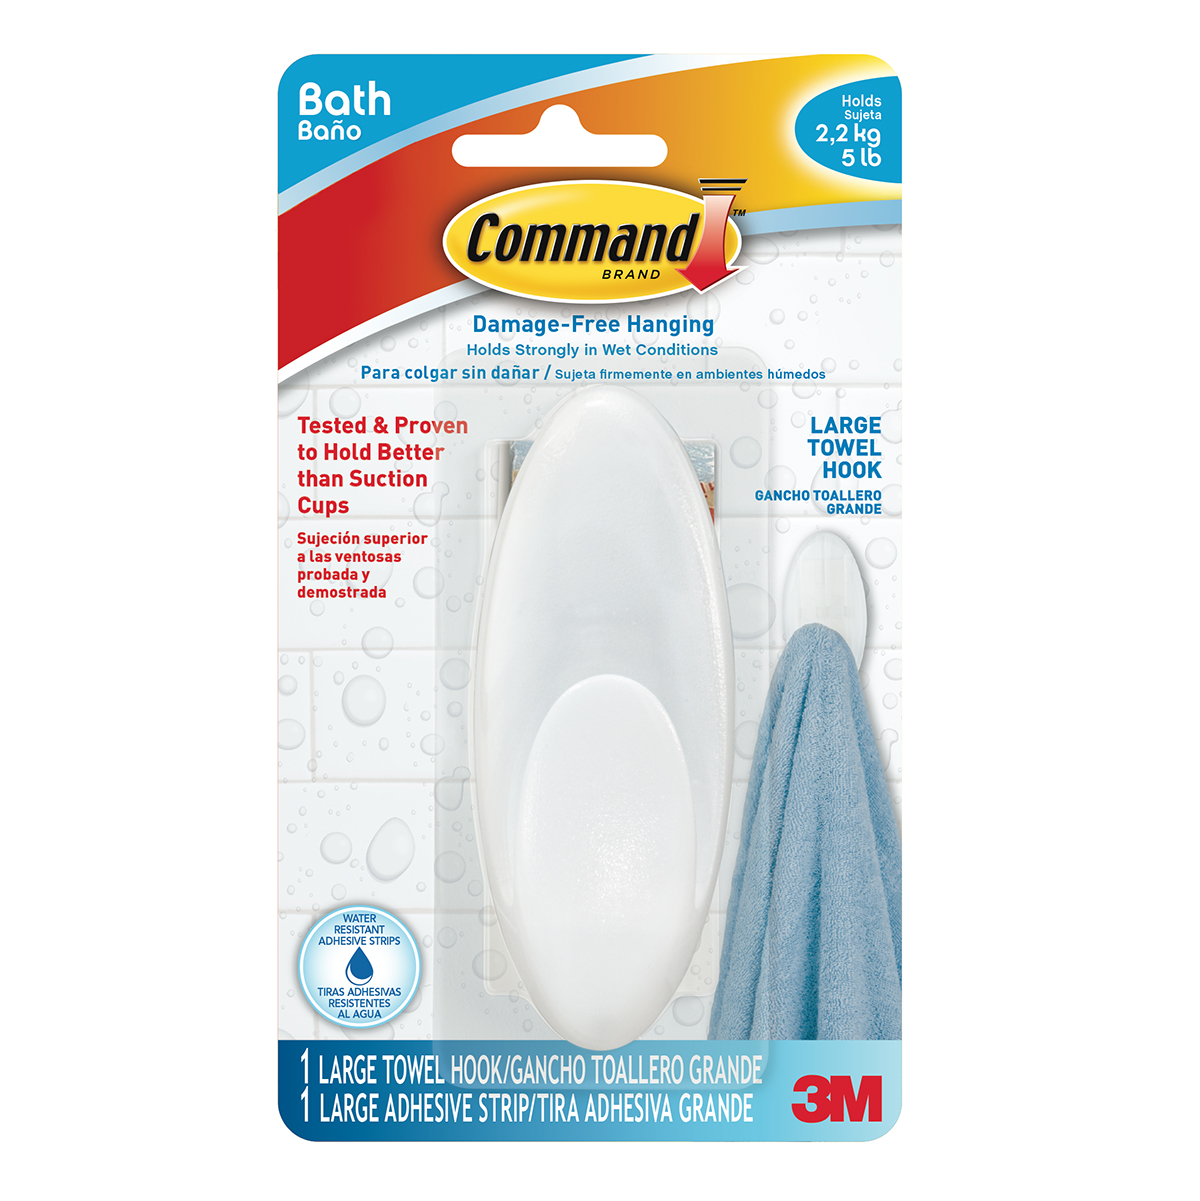 3M Command Large Bath Hook